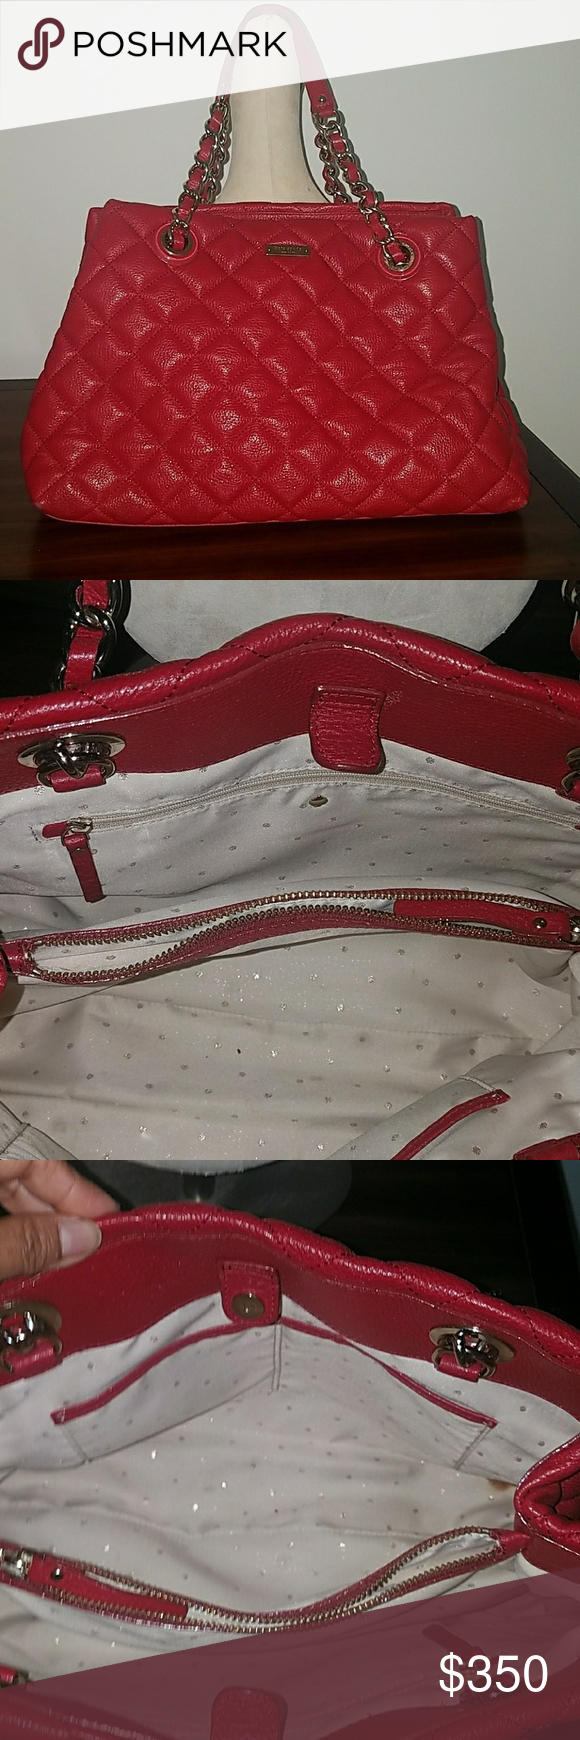 Kate Spade Quilted Red Handbag